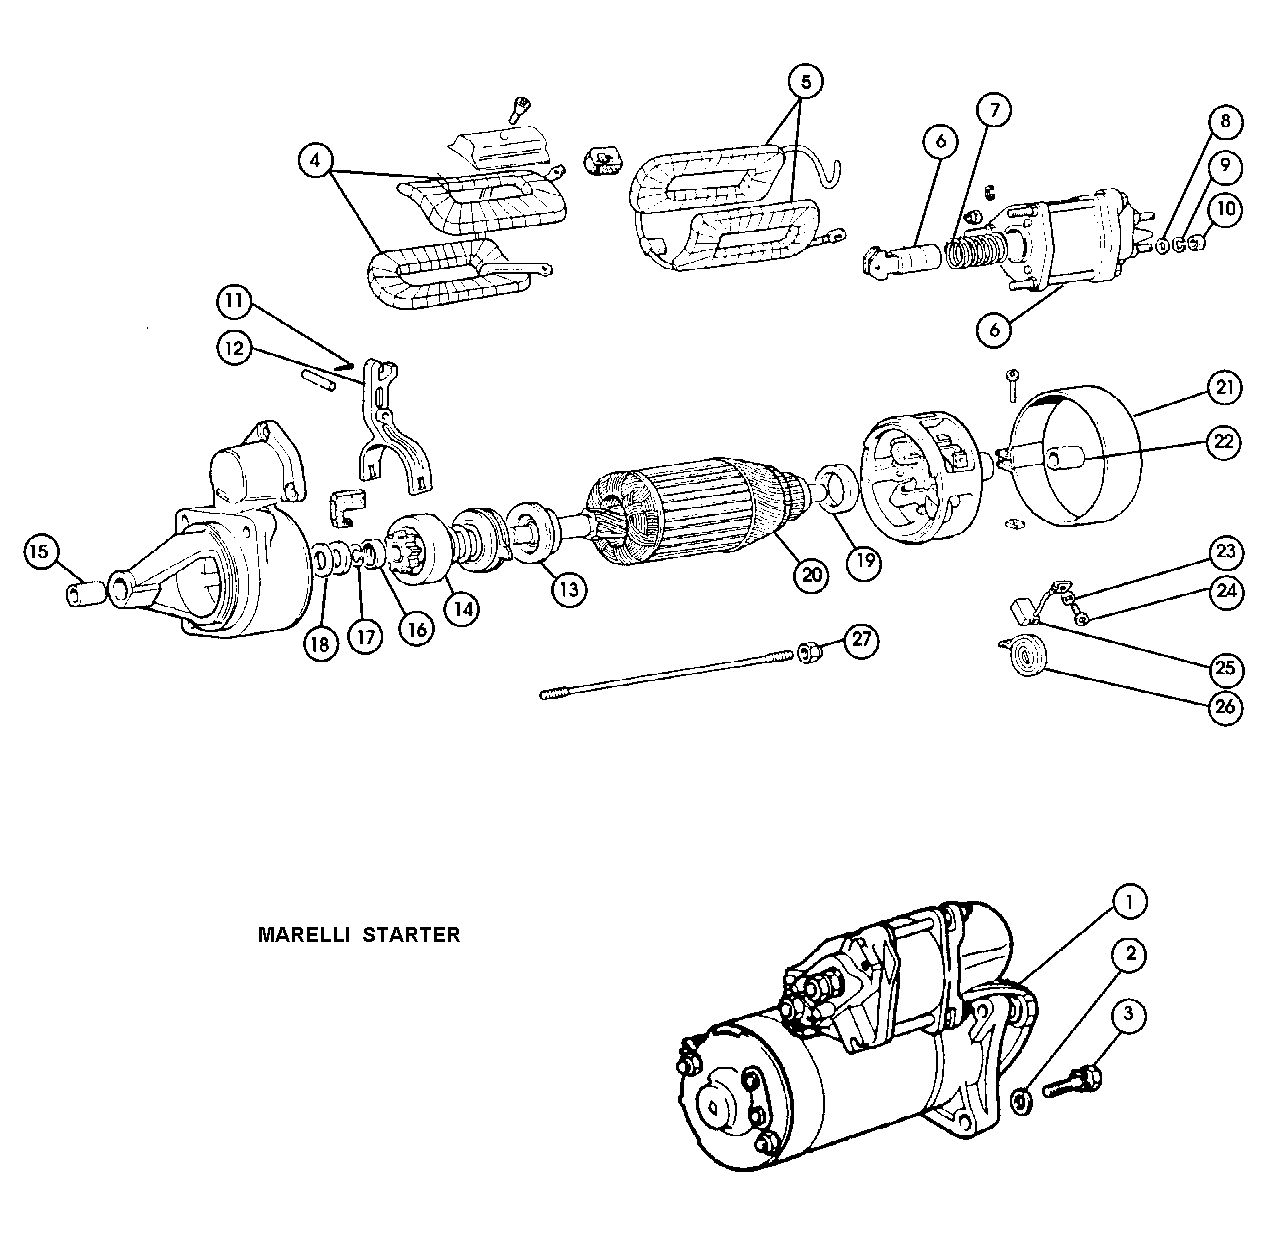 Fiat 124 Starter Motor 1966 85 Magneti Marelli 500 And Transmission Diagram Parts